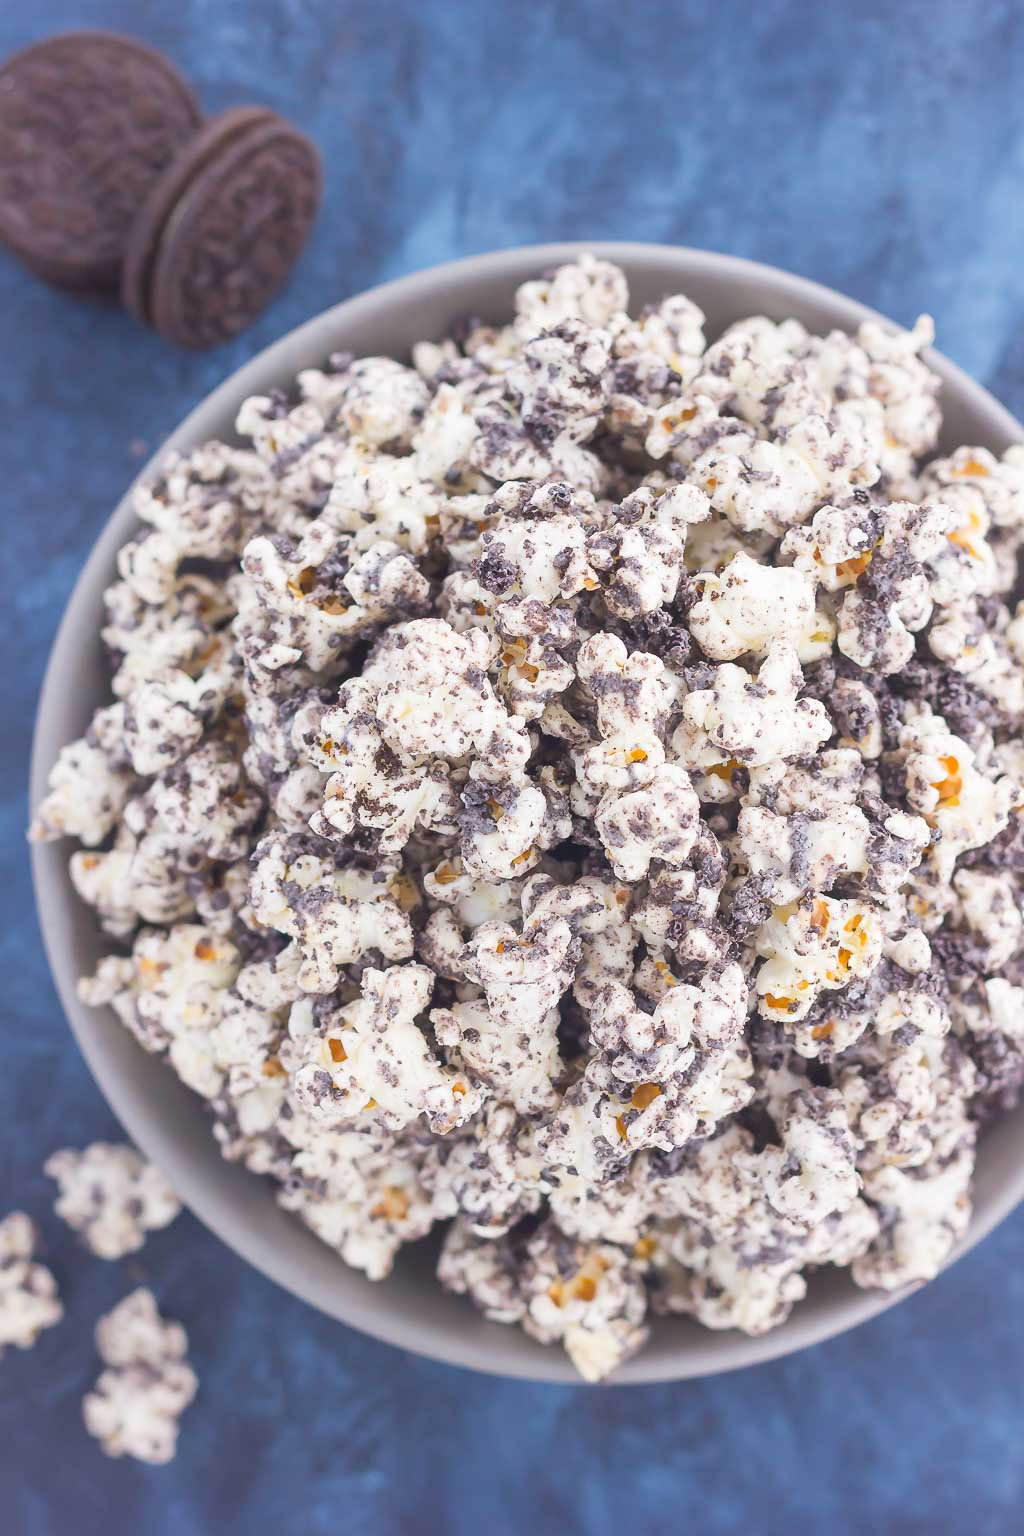 This Cookies and Cream Popcorn is an easy sweet treat that's ready in less than 10 minutes. Popcorn is coated with creamy white chocolate and then sprinkled with crushed Oreo cookies. Fast, easy, and perfect to munch on, this is the ultimate treat for when those snack attacks strike!